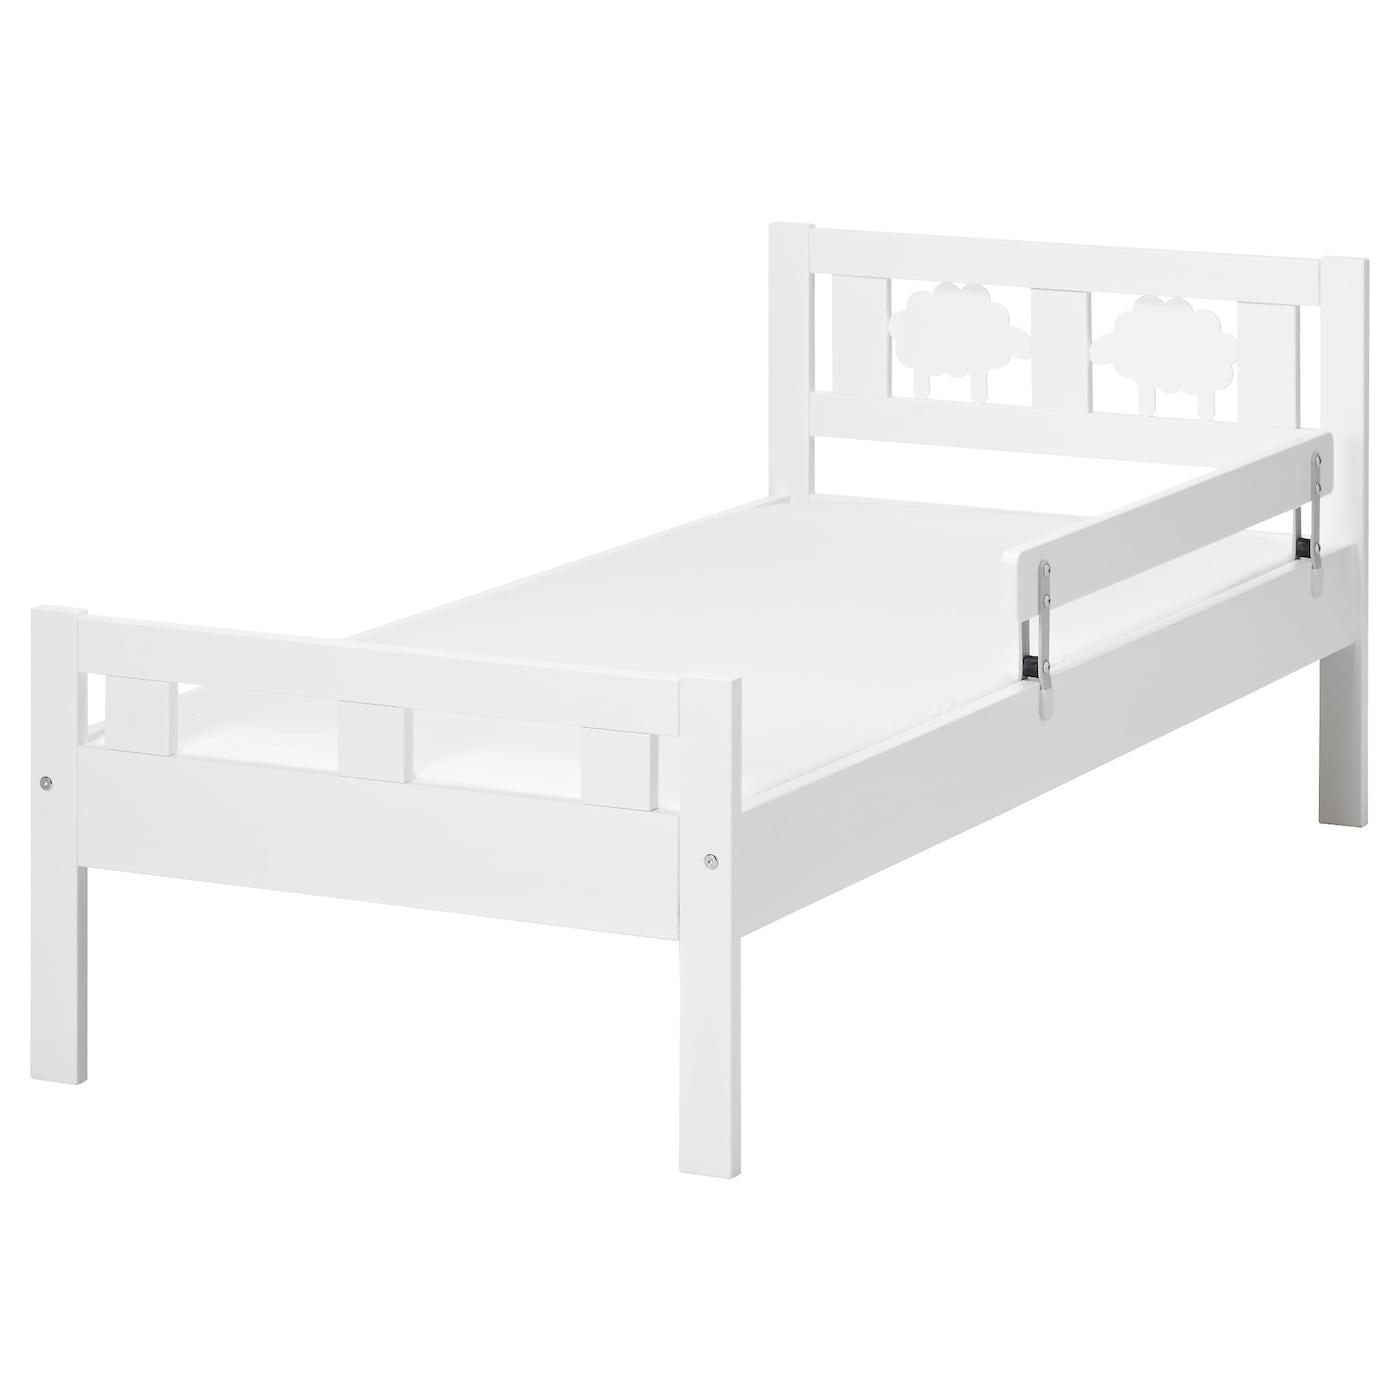 kritter cadre lit sommier lattes blanc 70 x 160 cm ikea. Black Bedroom Furniture Sets. Home Design Ideas